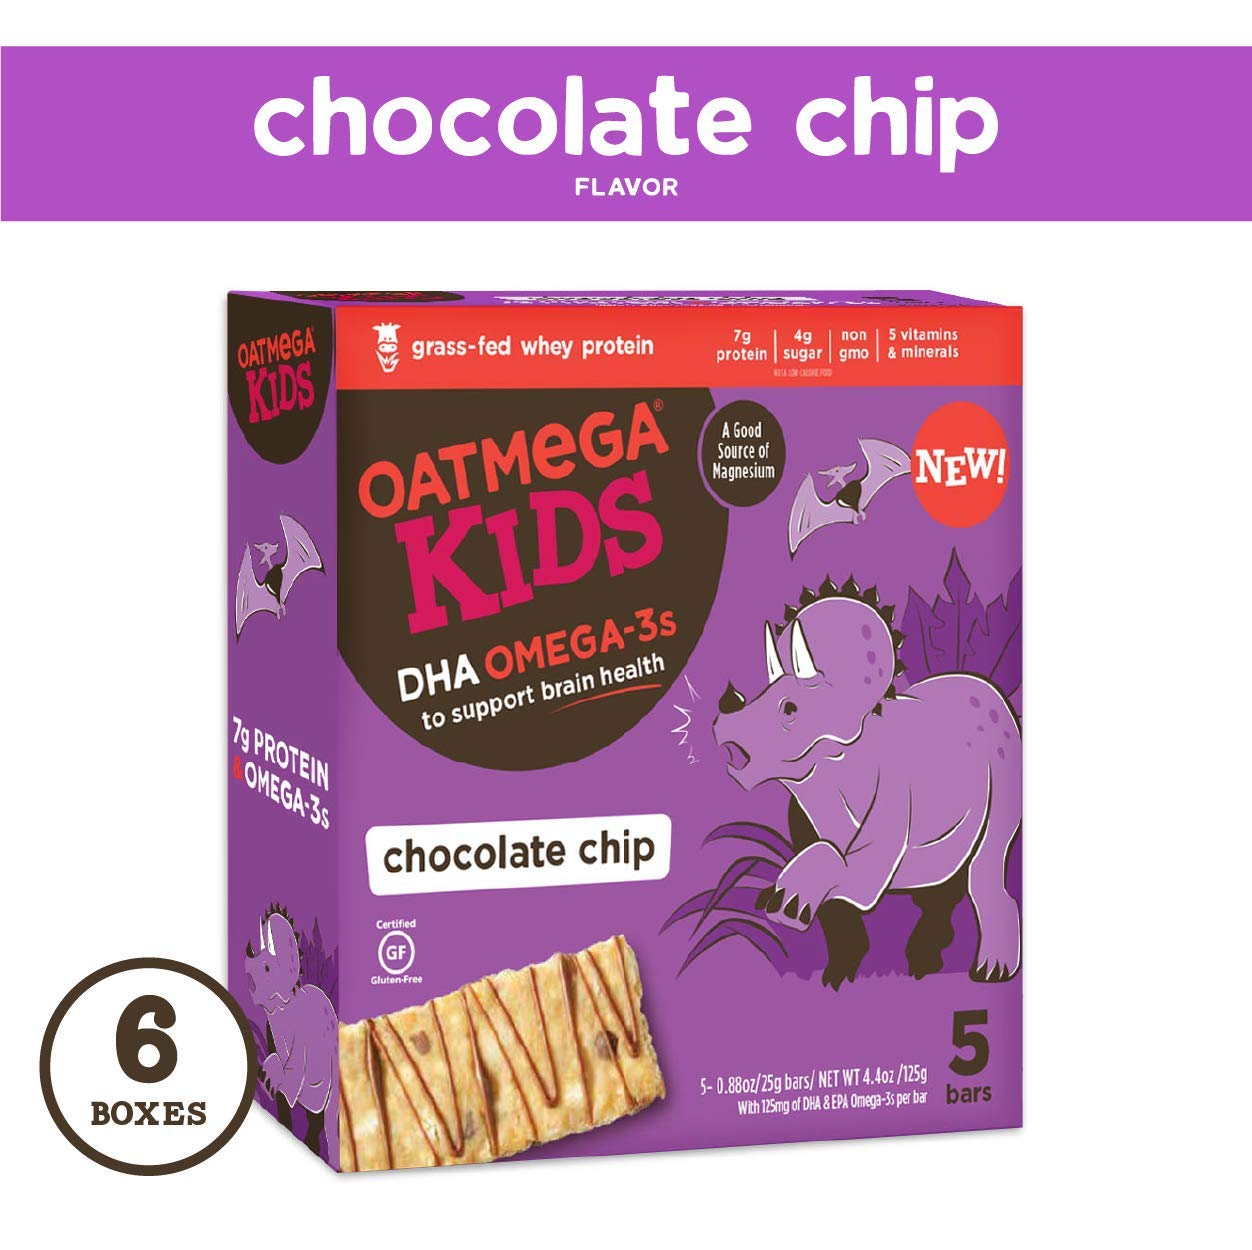 Oatmega Kids Protein Bars, Healthy Snack with Omega 3, Chocolate Chip, 6 Boxes of 5 Bars